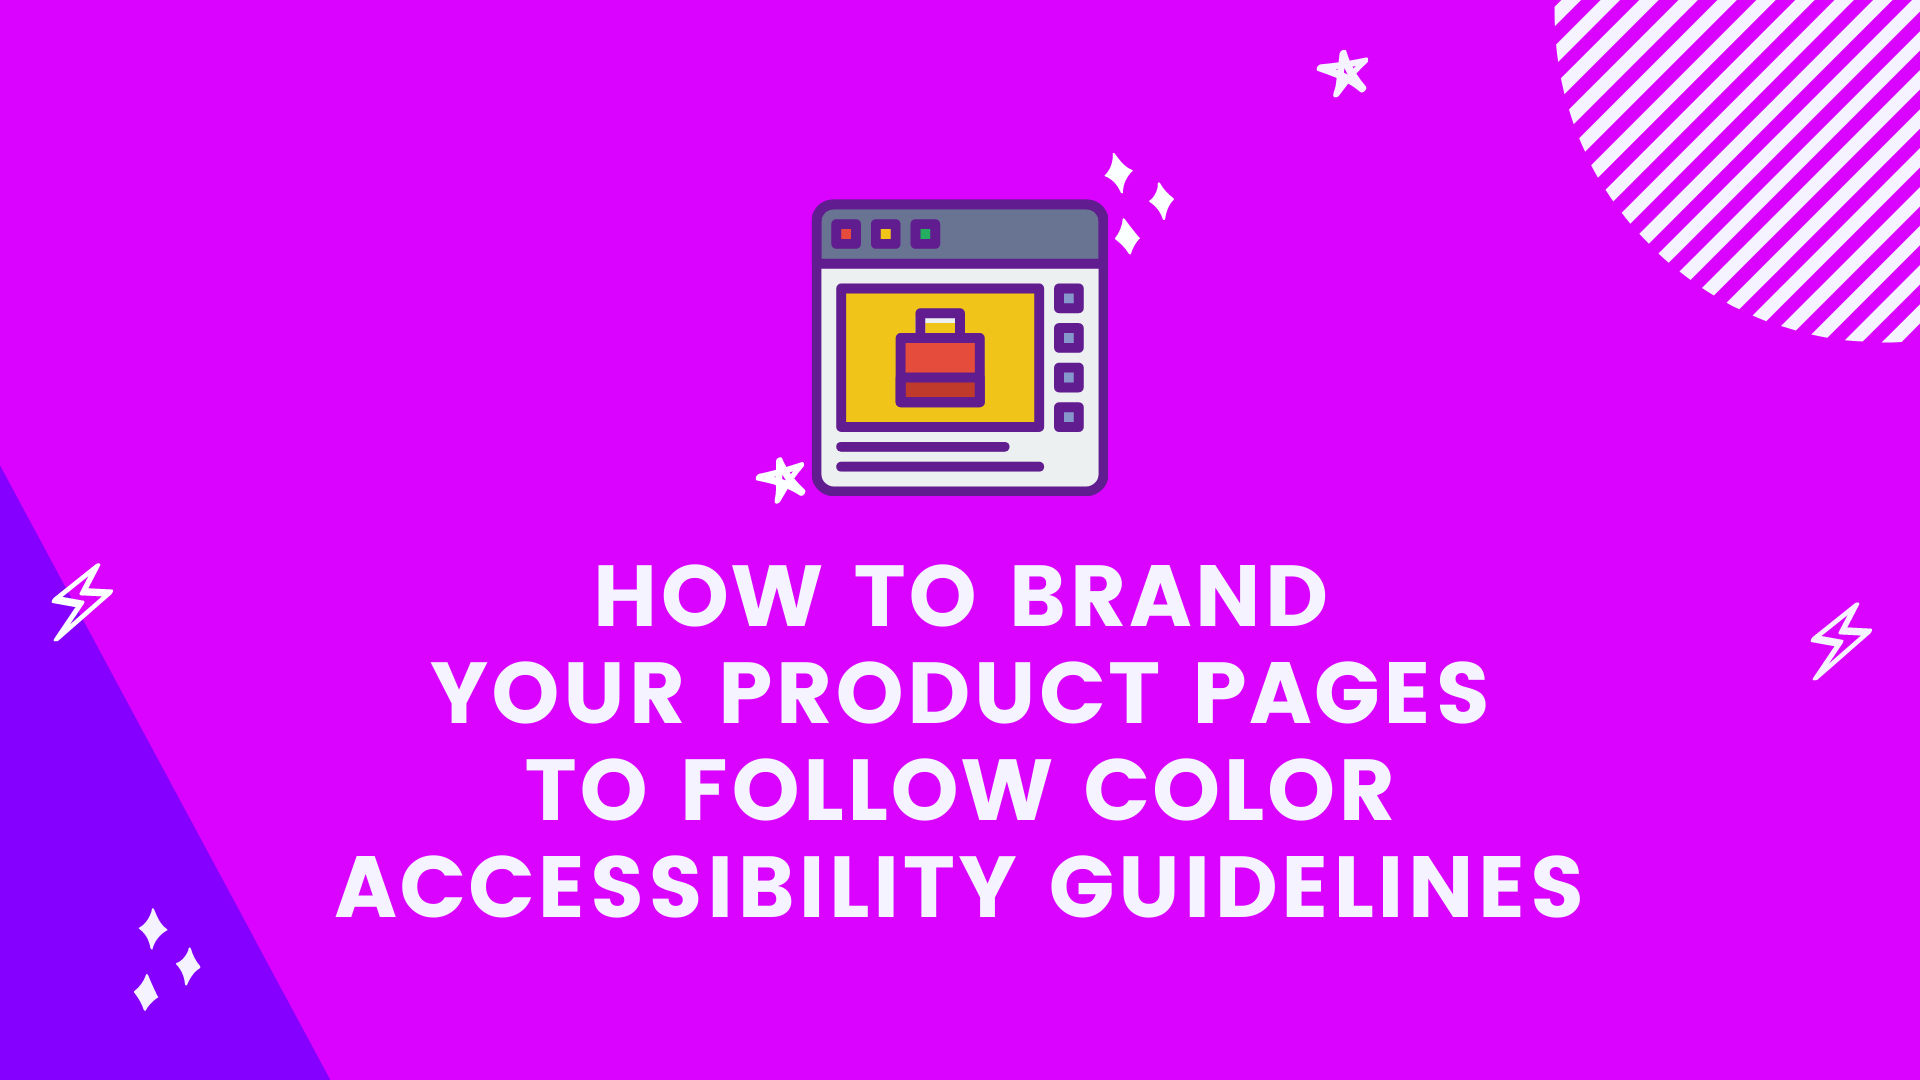 How to Brand Your Product Pages to Follow Color Accessibility Guidelines